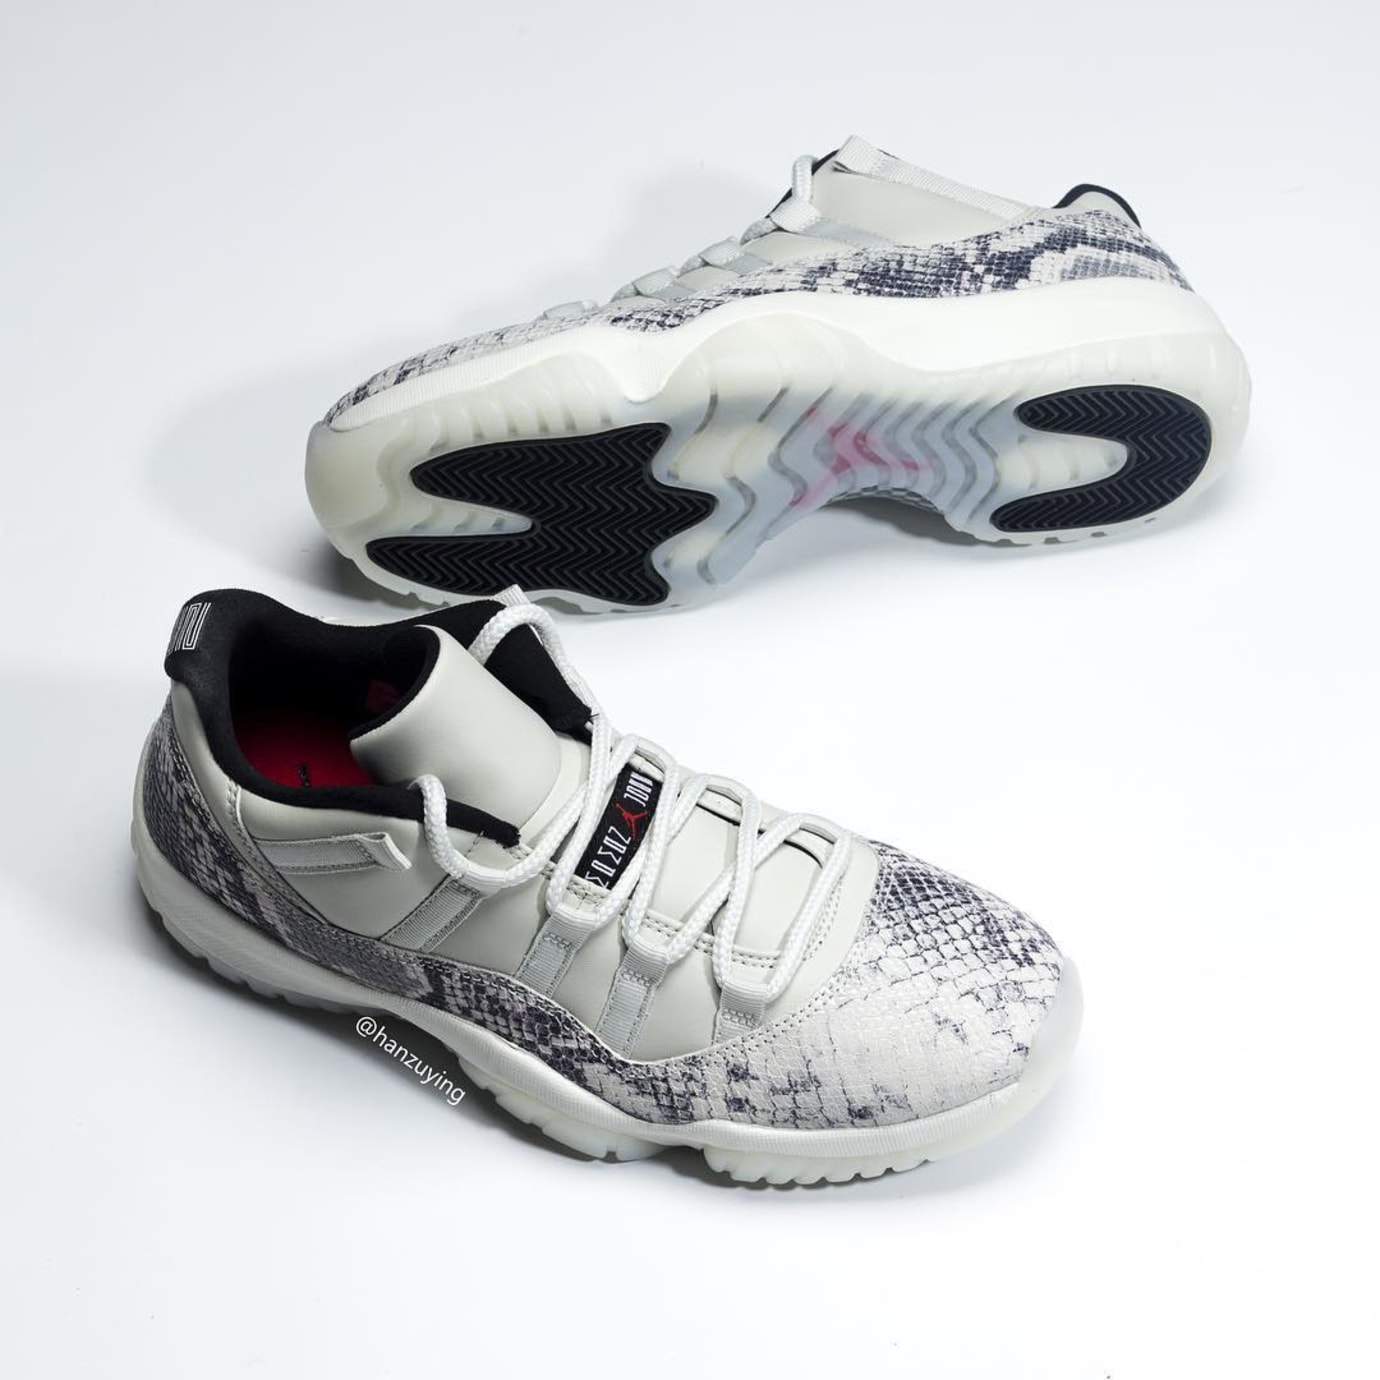 d25cd89e5ed Image via hanzuying · Air Jordan 11 Low SE Snakeskin 'Light Bone/University  Red-Sail-Black